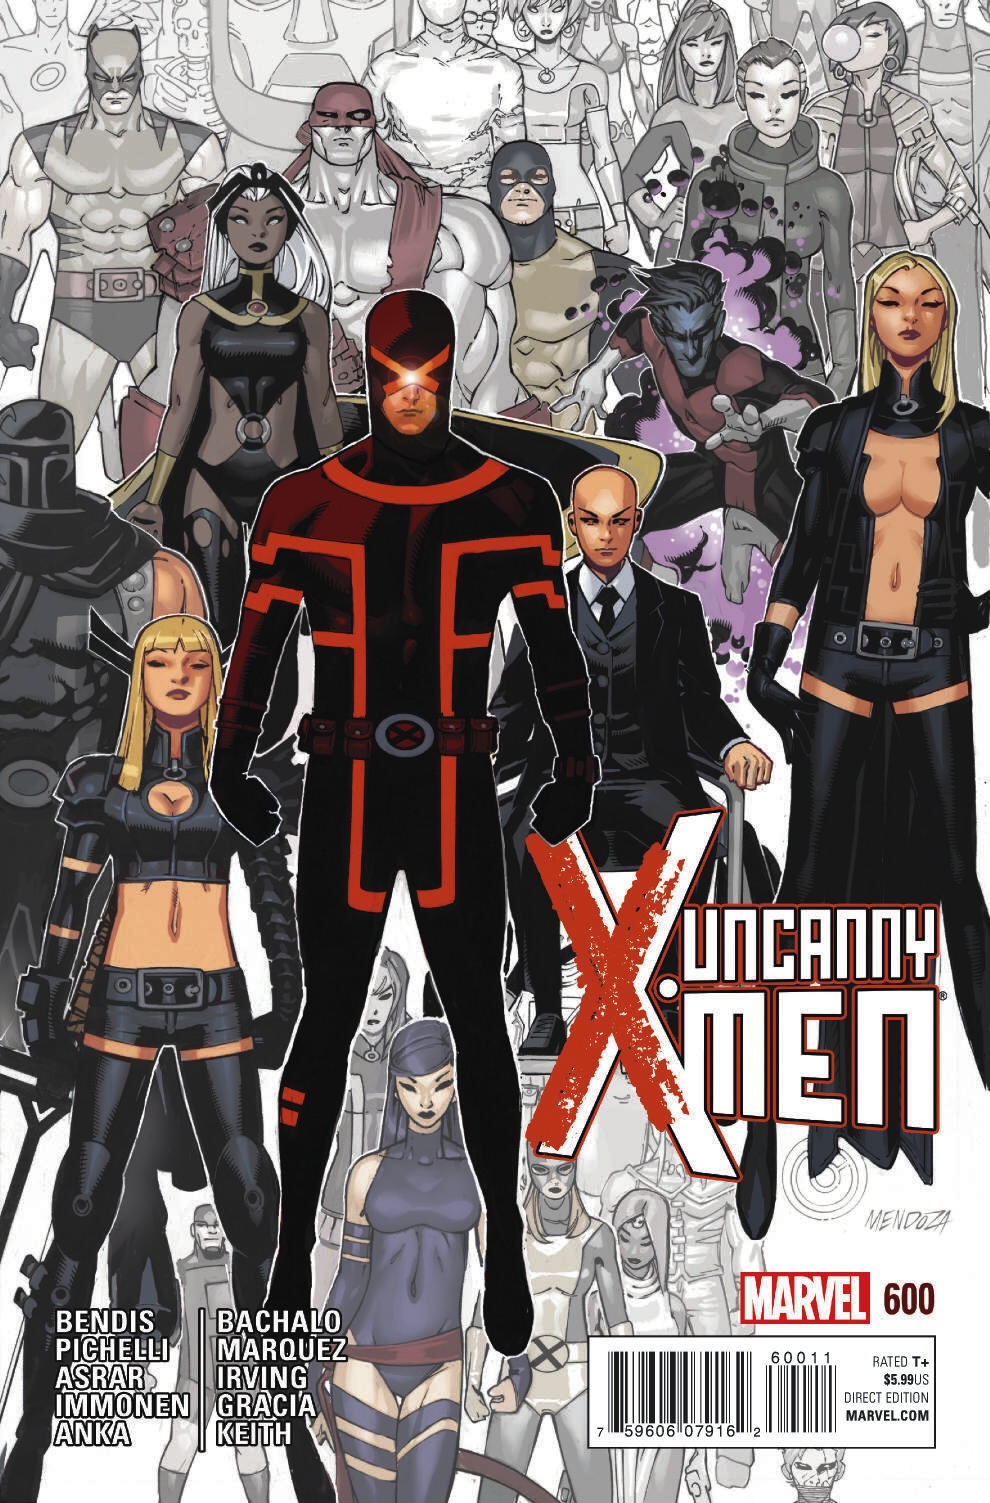 The End of an Era – Your New Look at UNCANNY X-MEN #600!